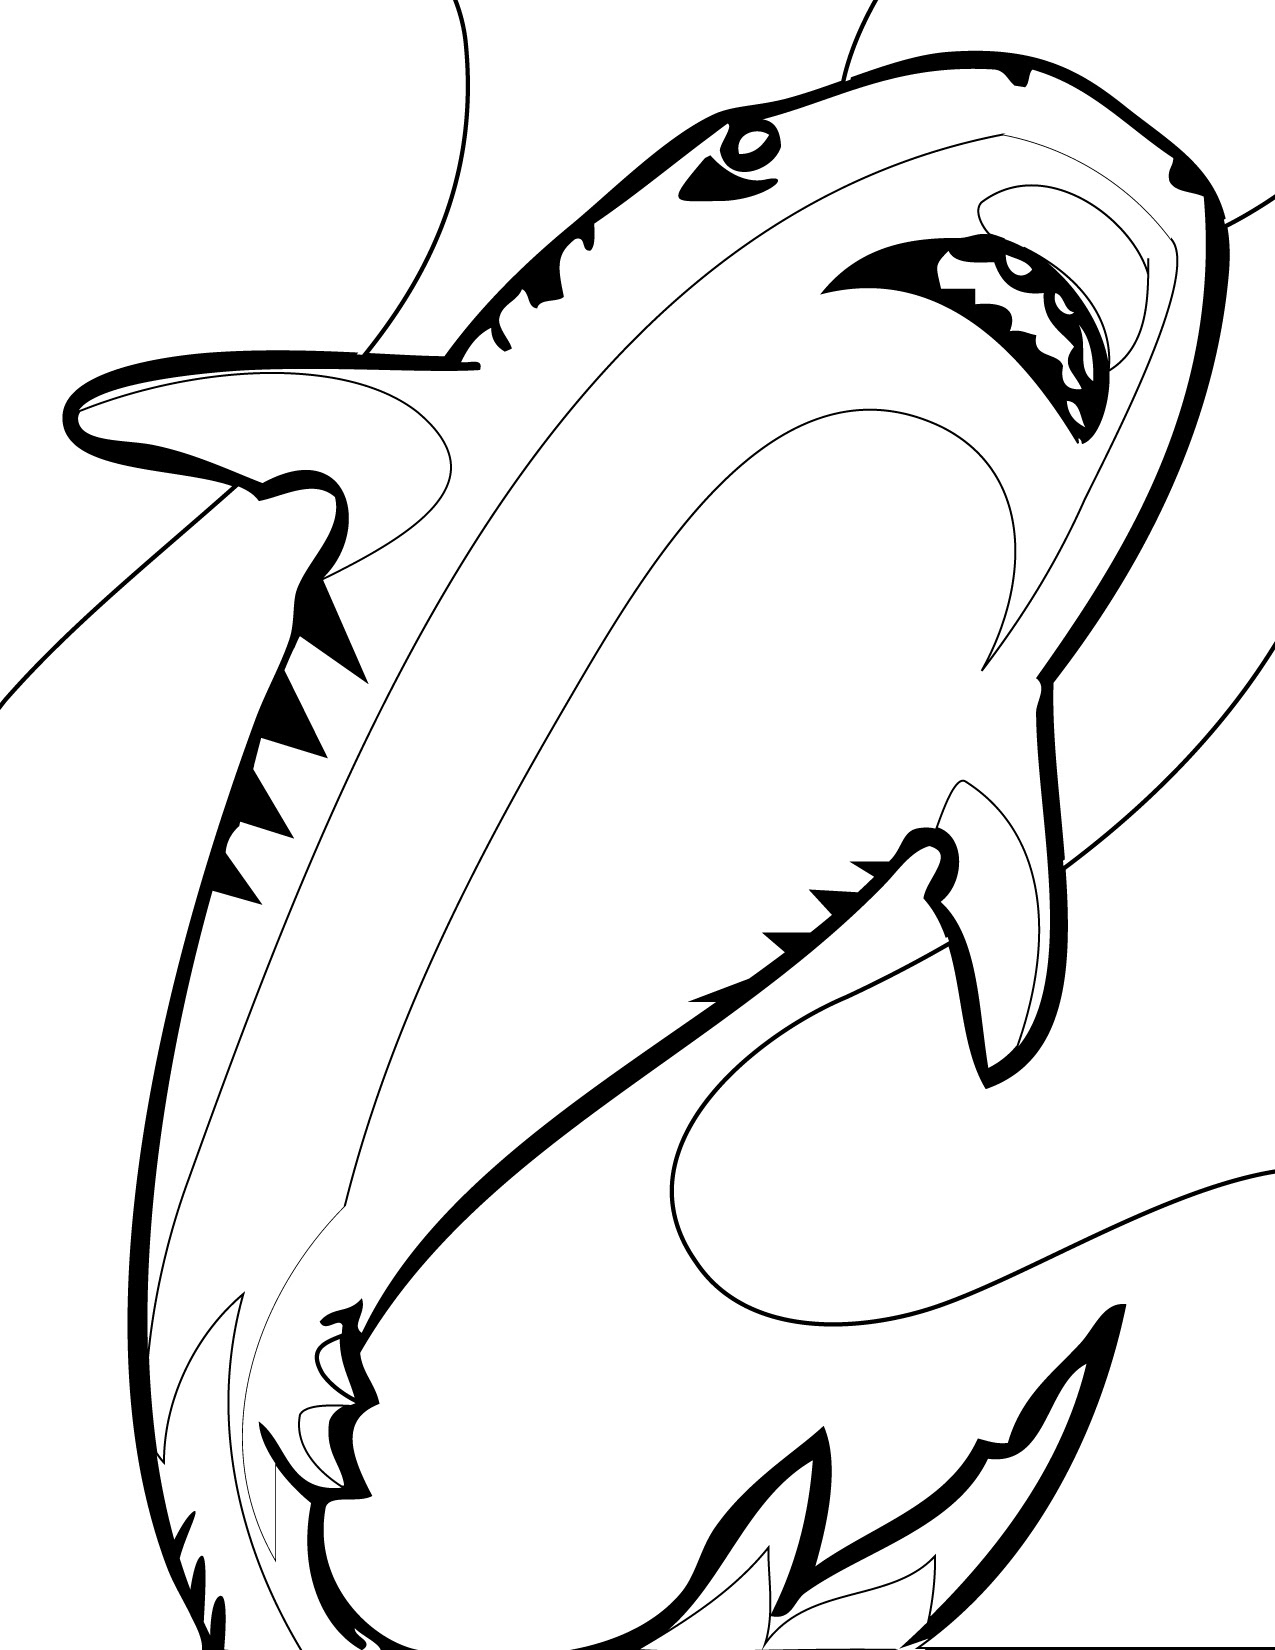 Bull Shark Coloring Page at GetDrawings | Free download